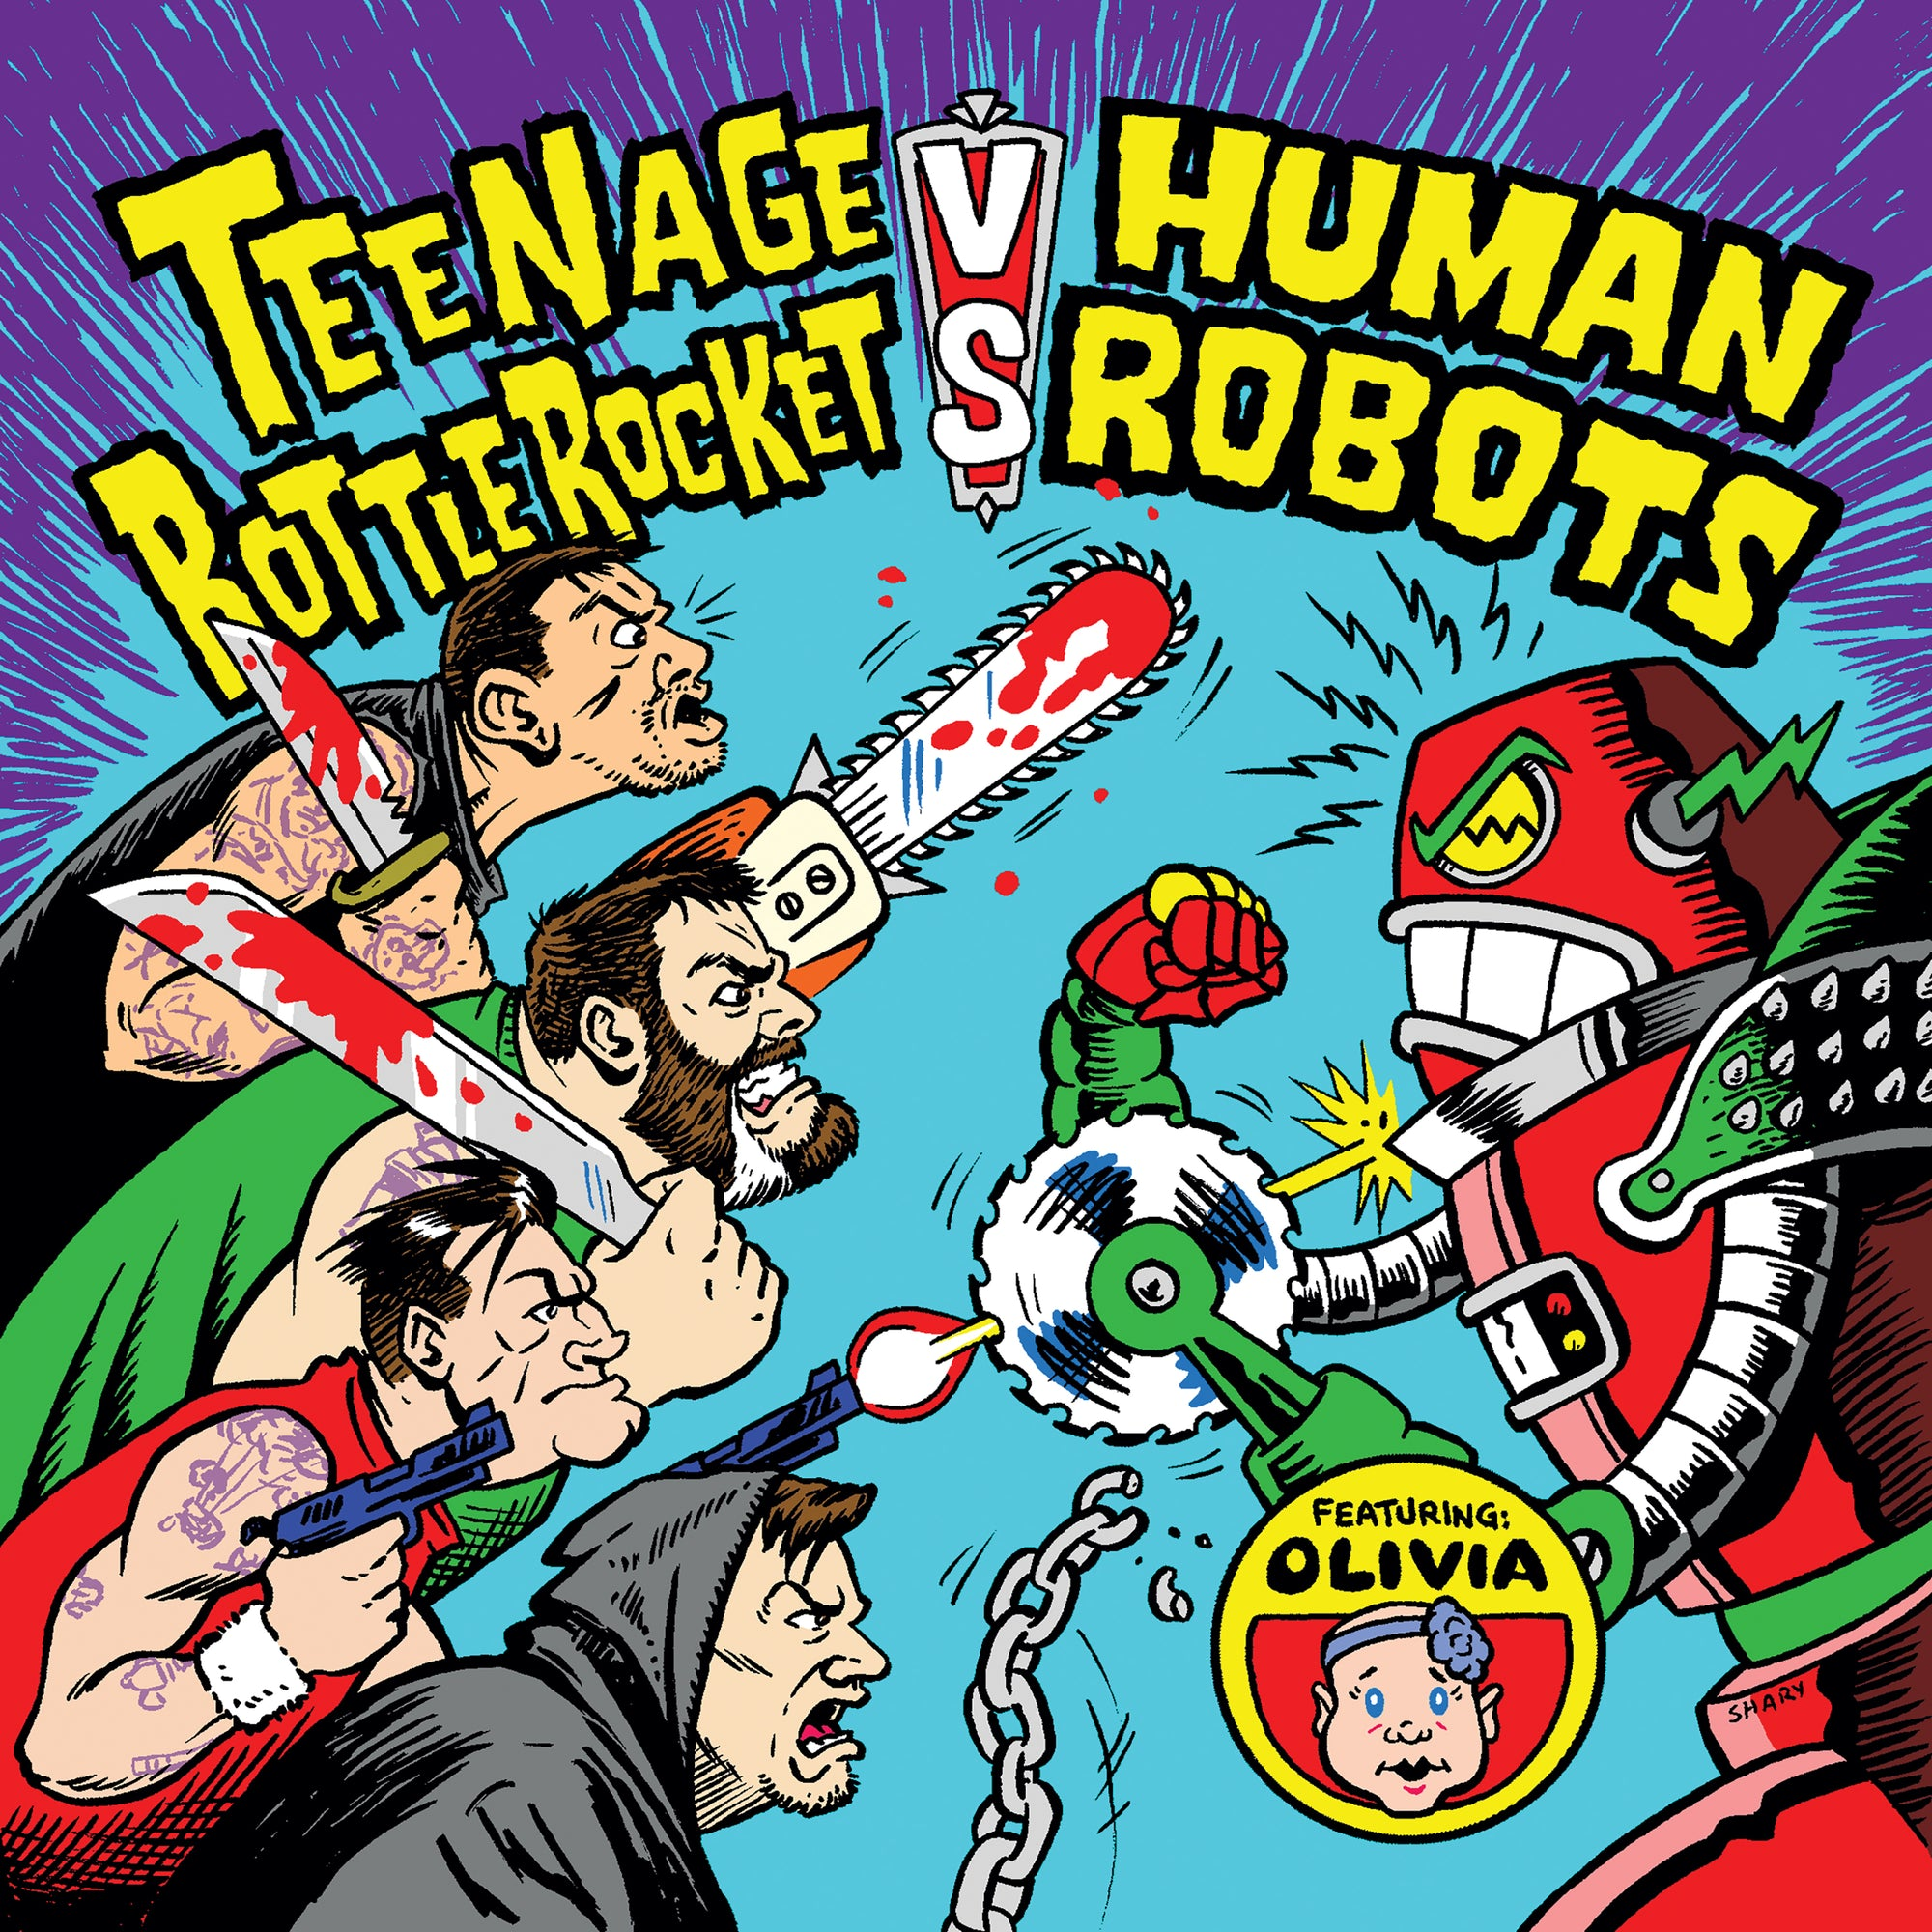 Teenage Bottlerocket vs. Human Robots